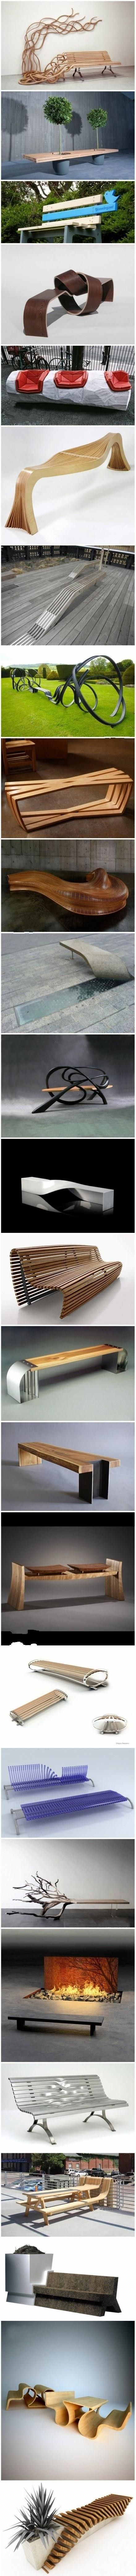 Top Creative Works » 26 excellent public benches design